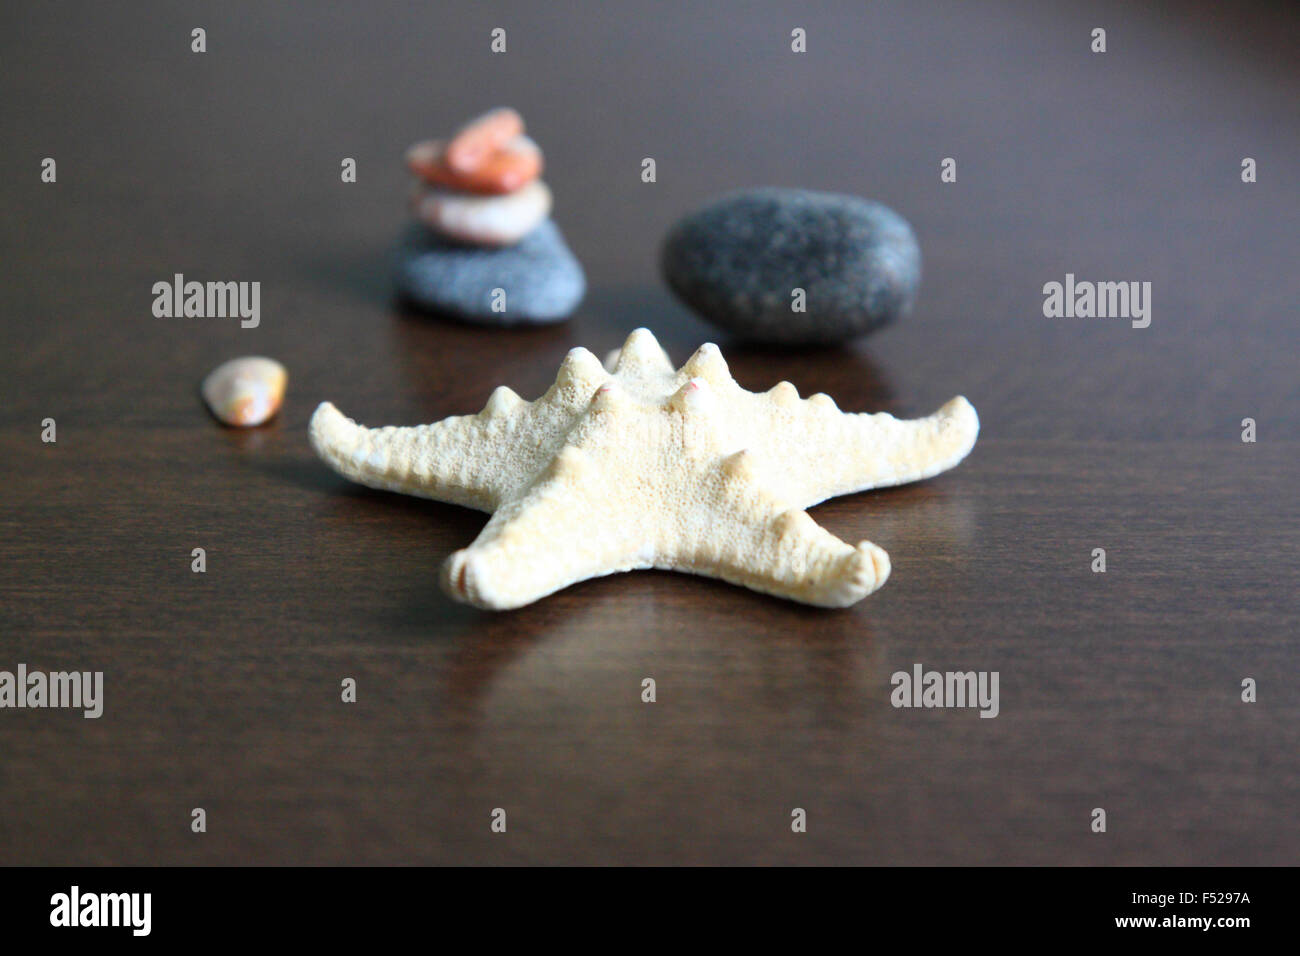 Starfish and pebbles.Starfish and some small stones - reminiscence of the sea and hot summer days Horizontal photo. - Stock Image